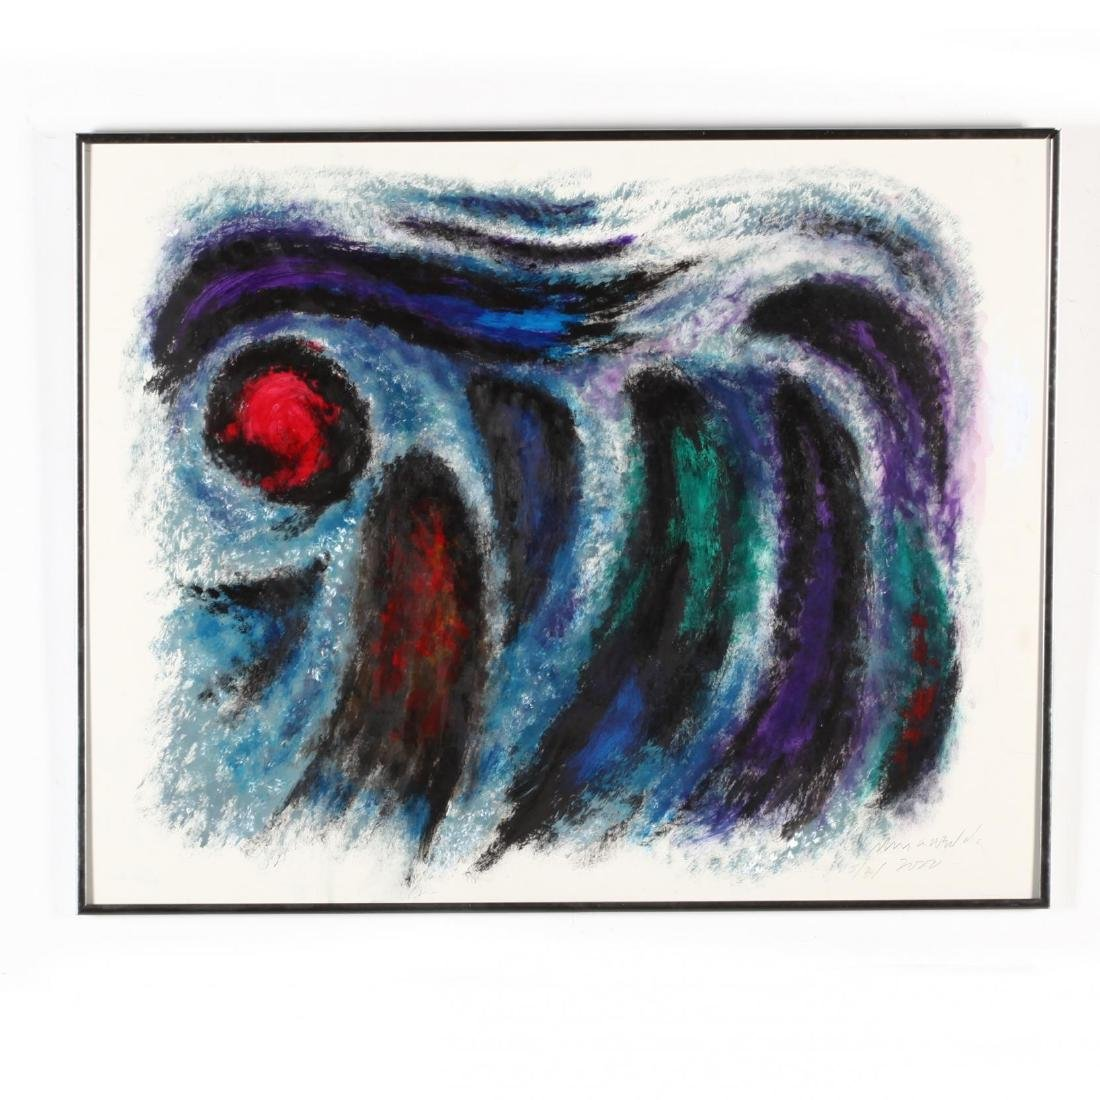 Two Abstract Expressionist Compositions - 2